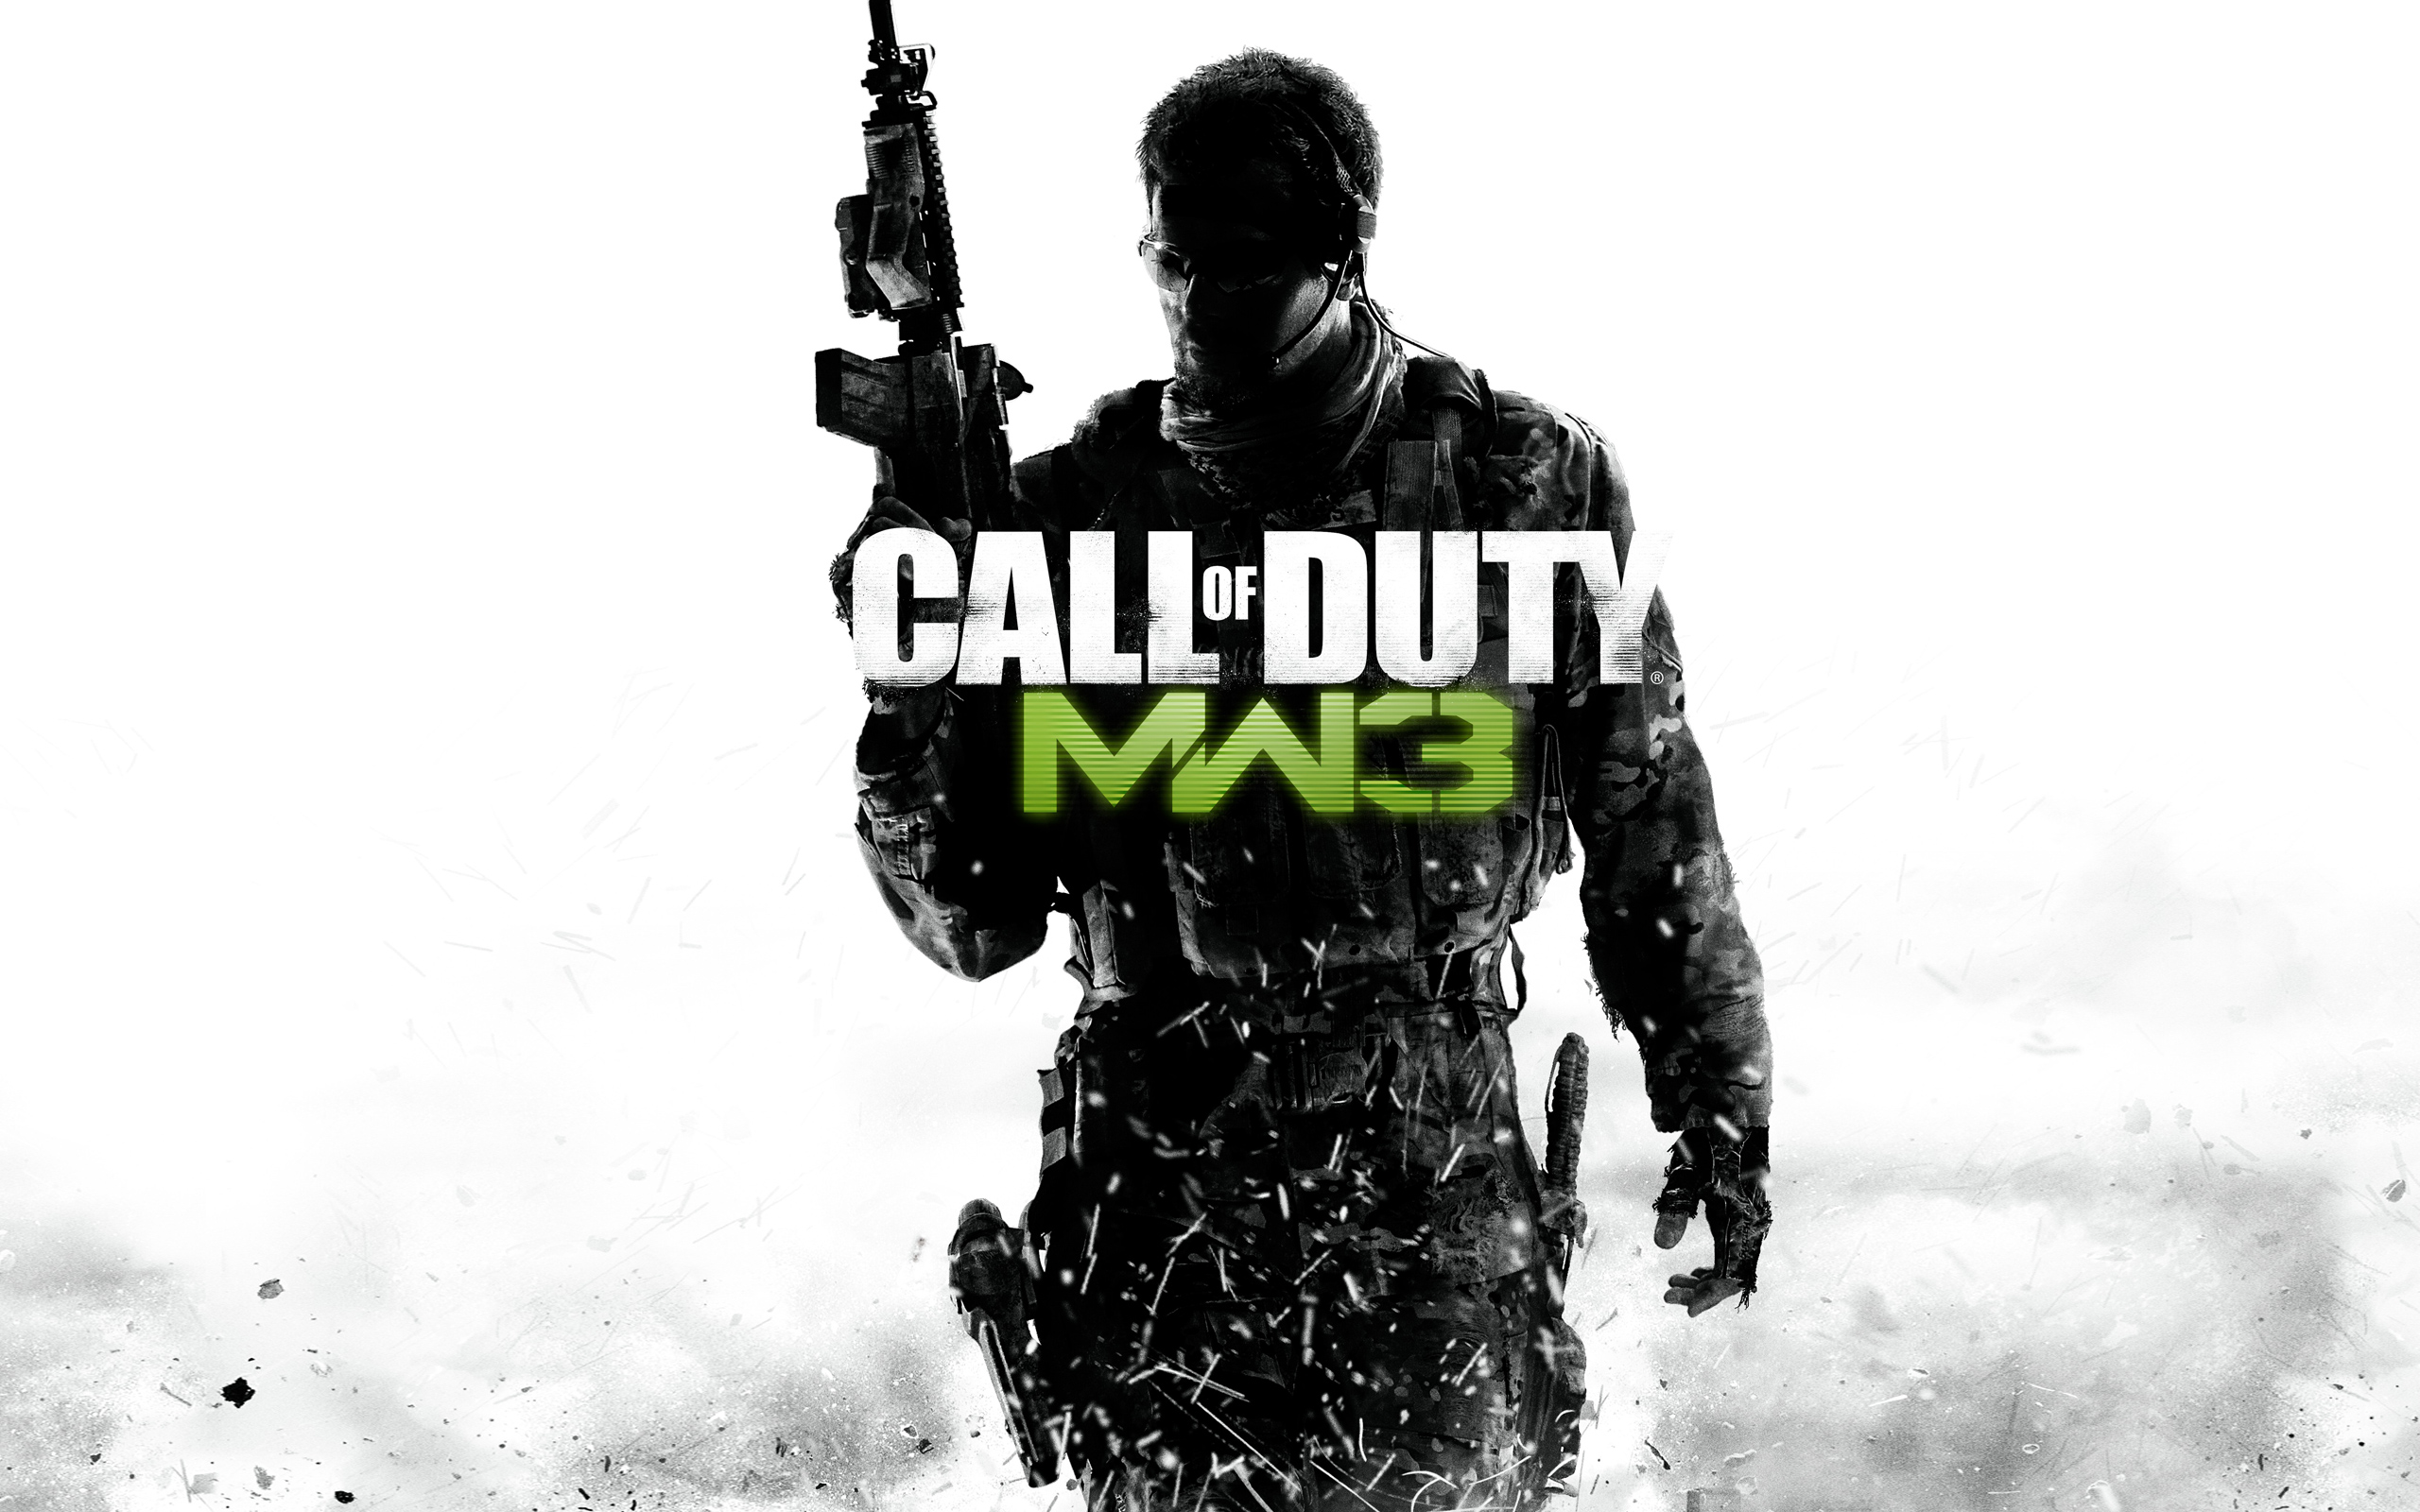 call of duty modern warfare 3 images cod hd wallpaper and